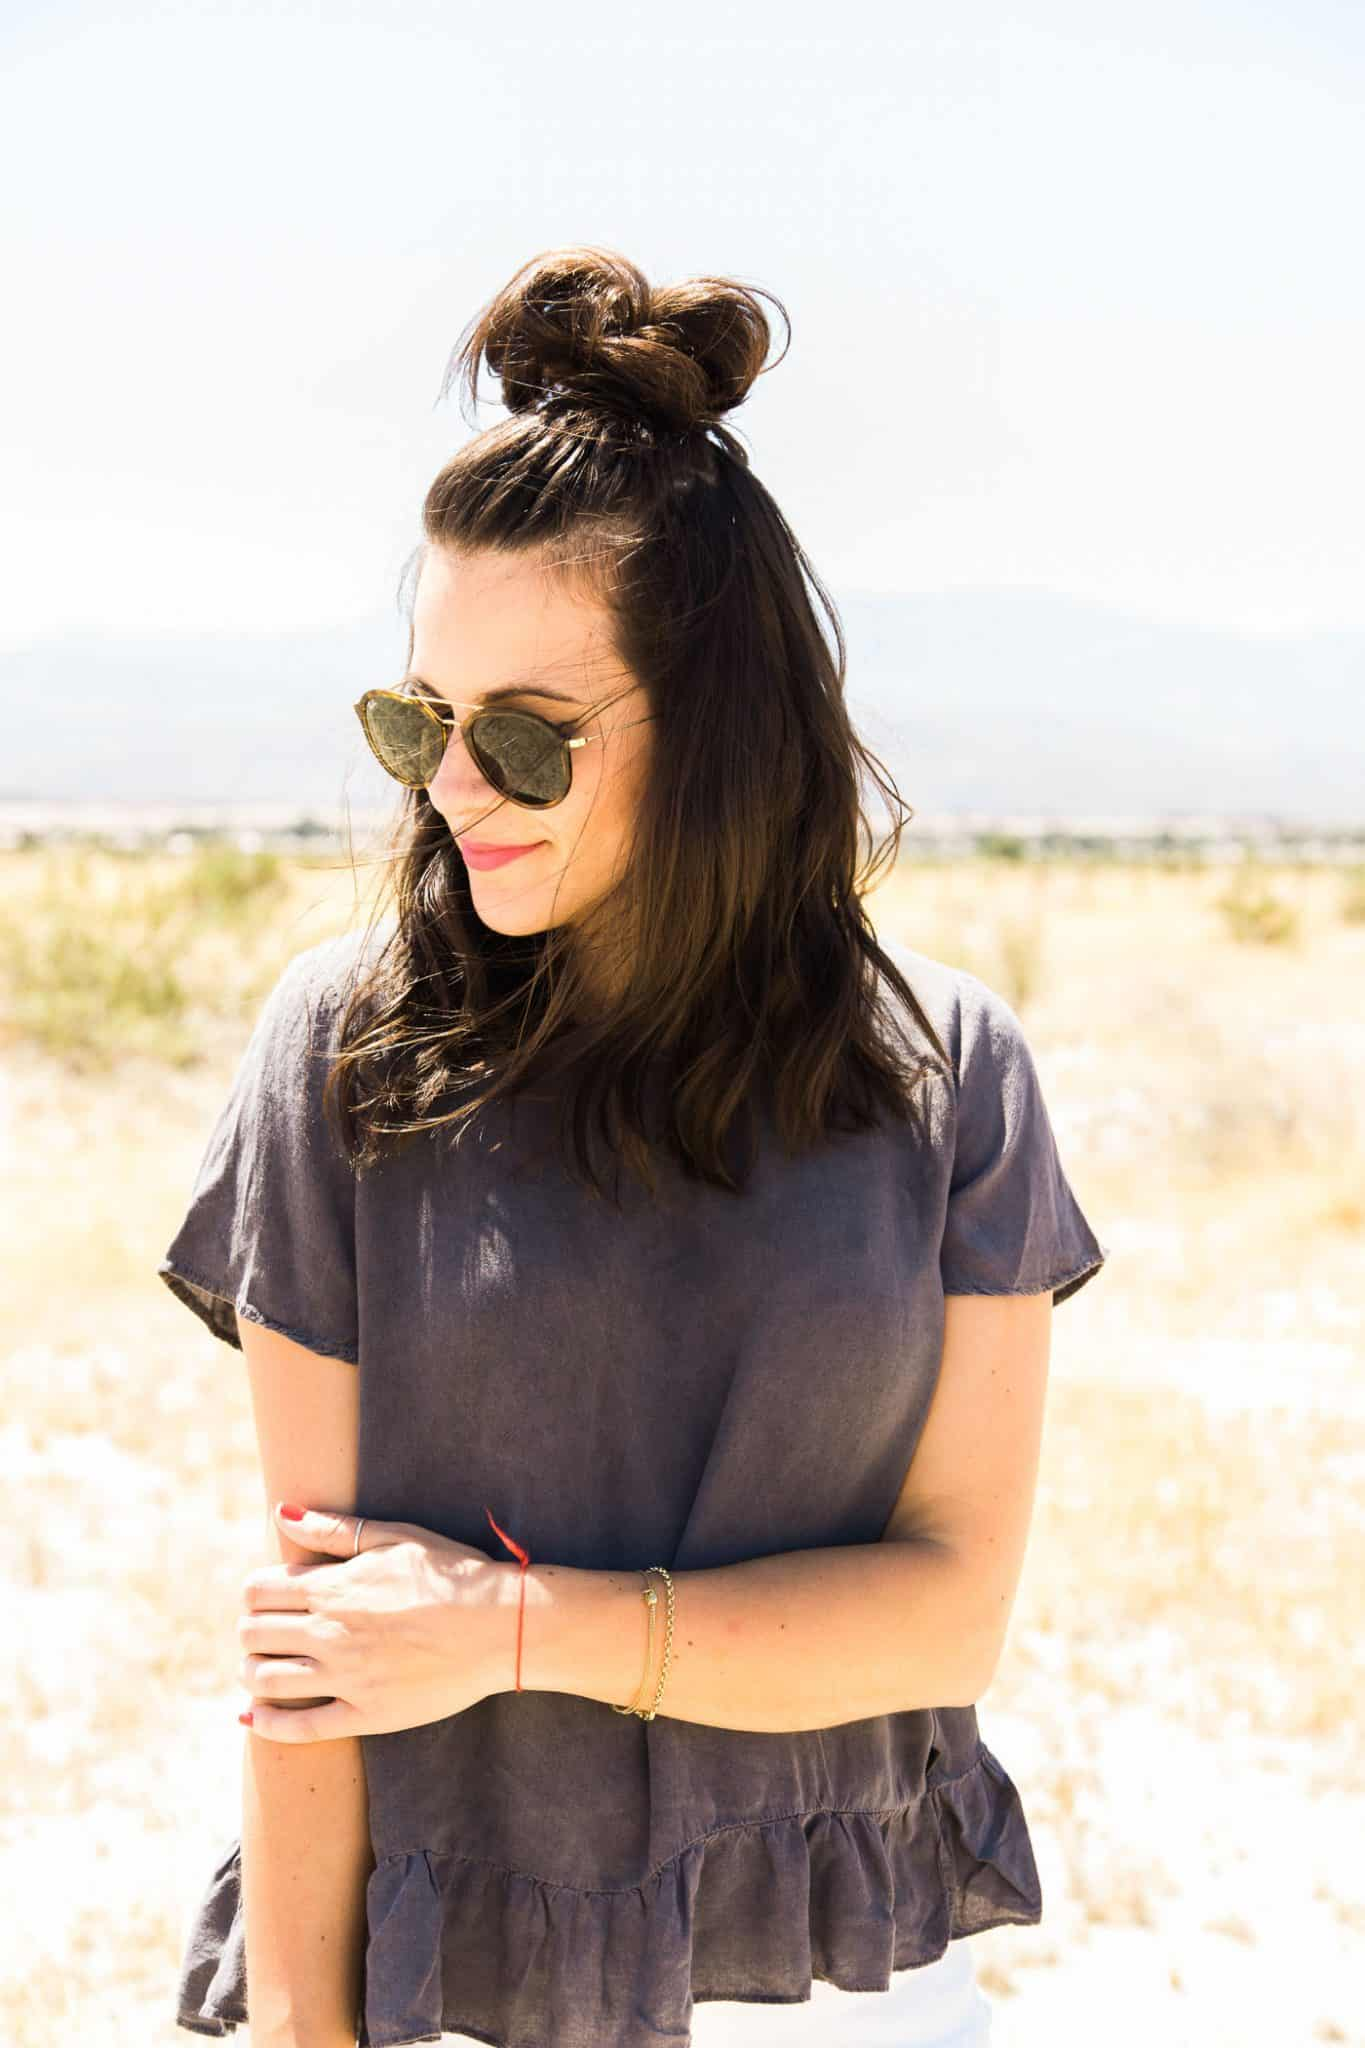 What to wear to a music festival - top knot - desert photoshoot - My Style Vita @mystylevita